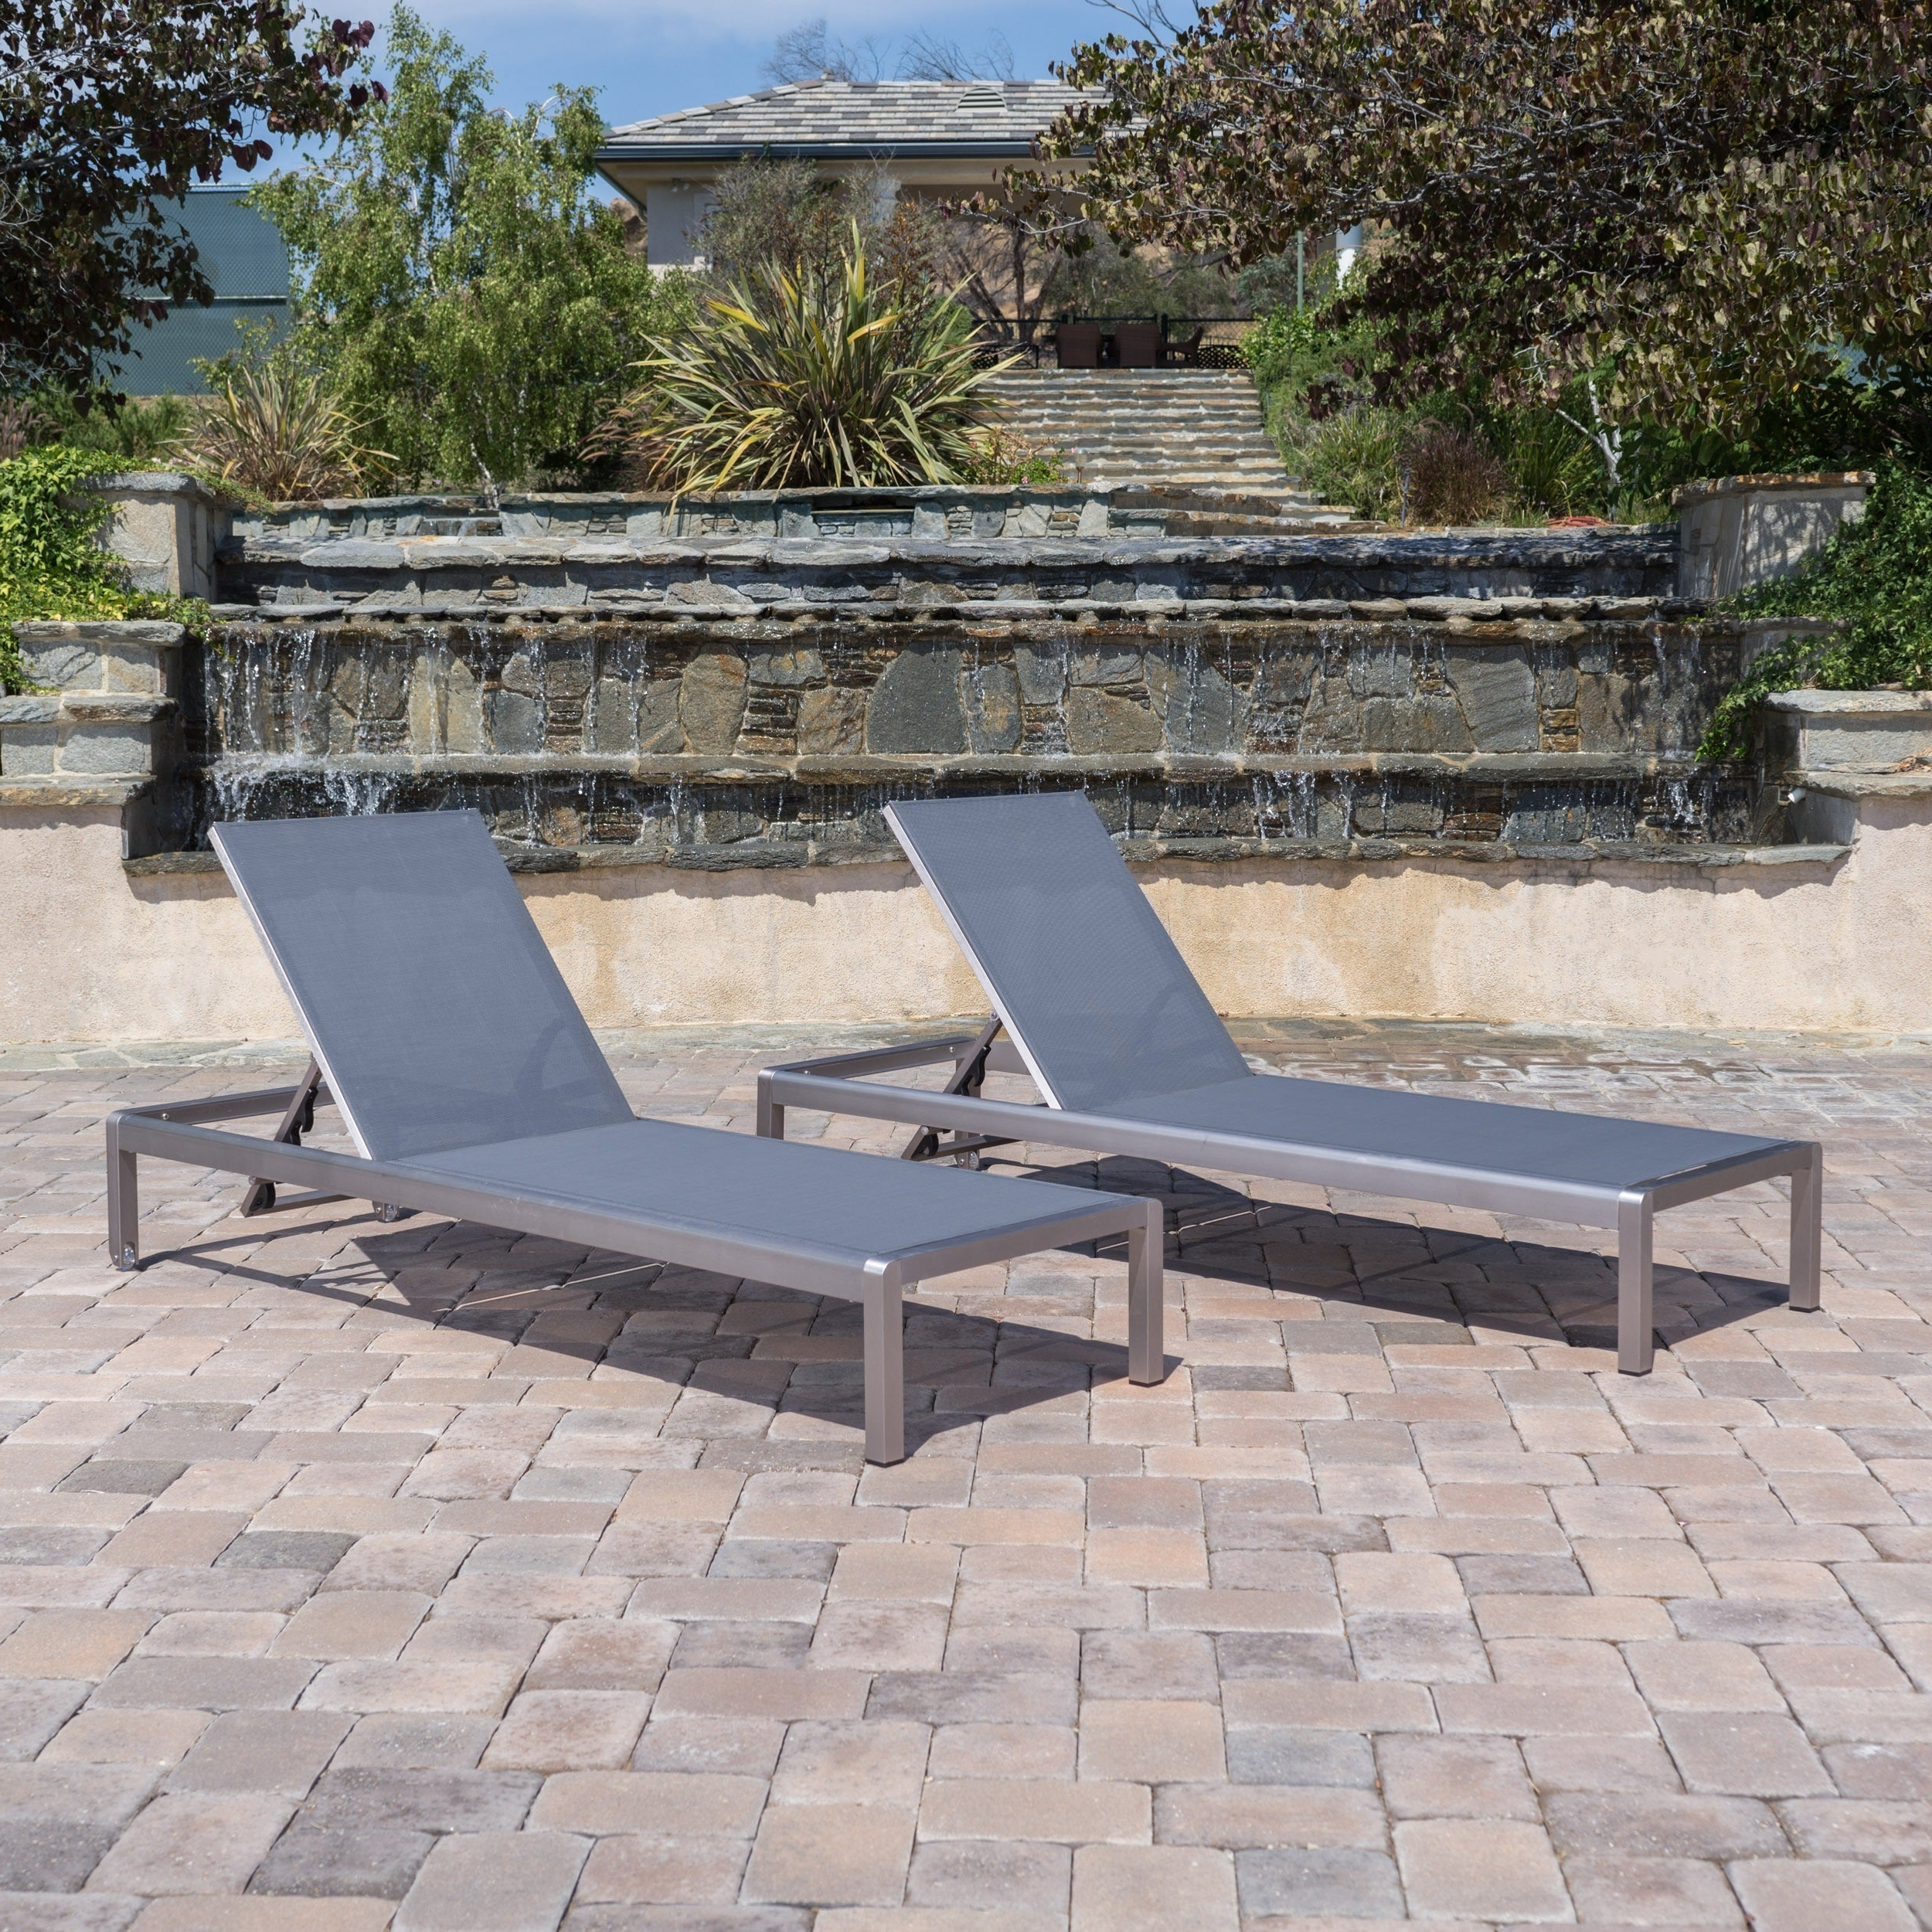 Cape Coral Outdoor Aluminum Adjustable Chaise Lounge (set Of 2) Christopher Knight Home For Most Popular Cape Coral Outdoor Aluminum Chaise Lounges (View 8 of 25)